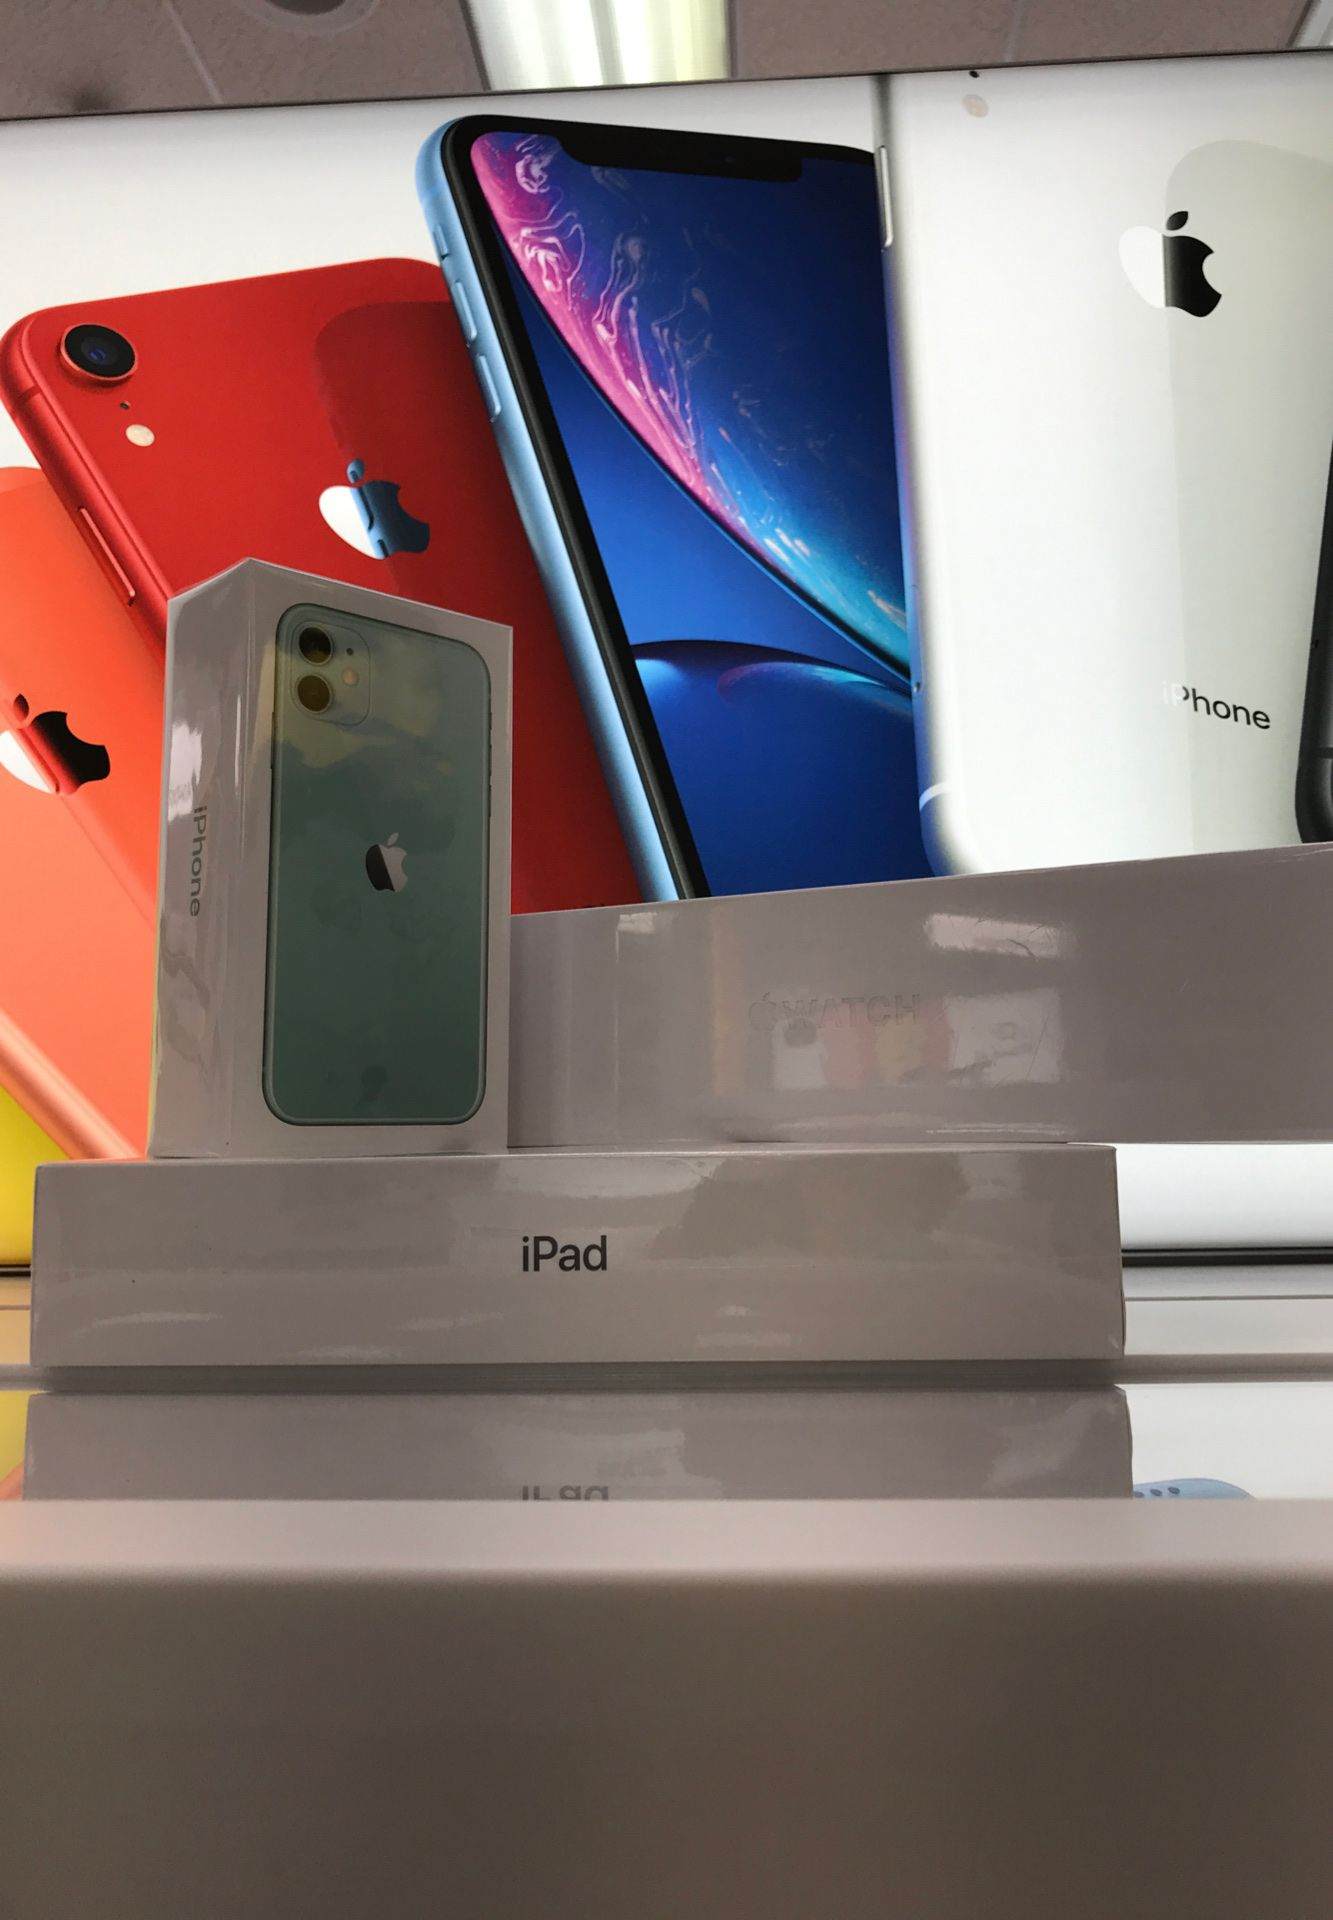 🔥❌Apple Products on Sale through Sprint❌🔥